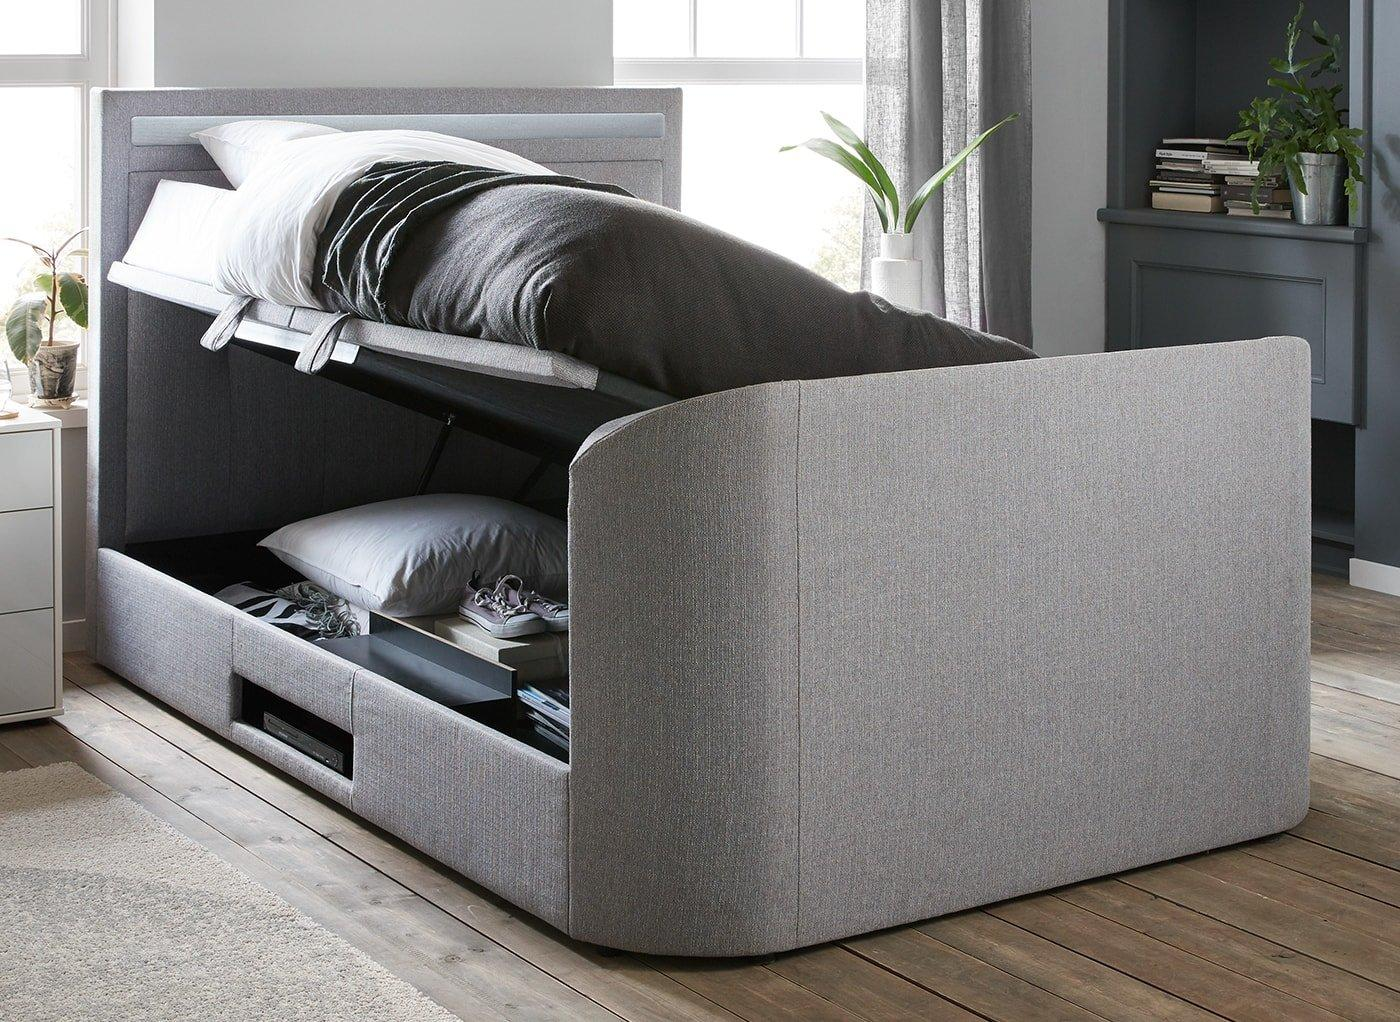 Tokyo D Otto TV/Media Bed Grey Fabric SMART TV 4'6 Double